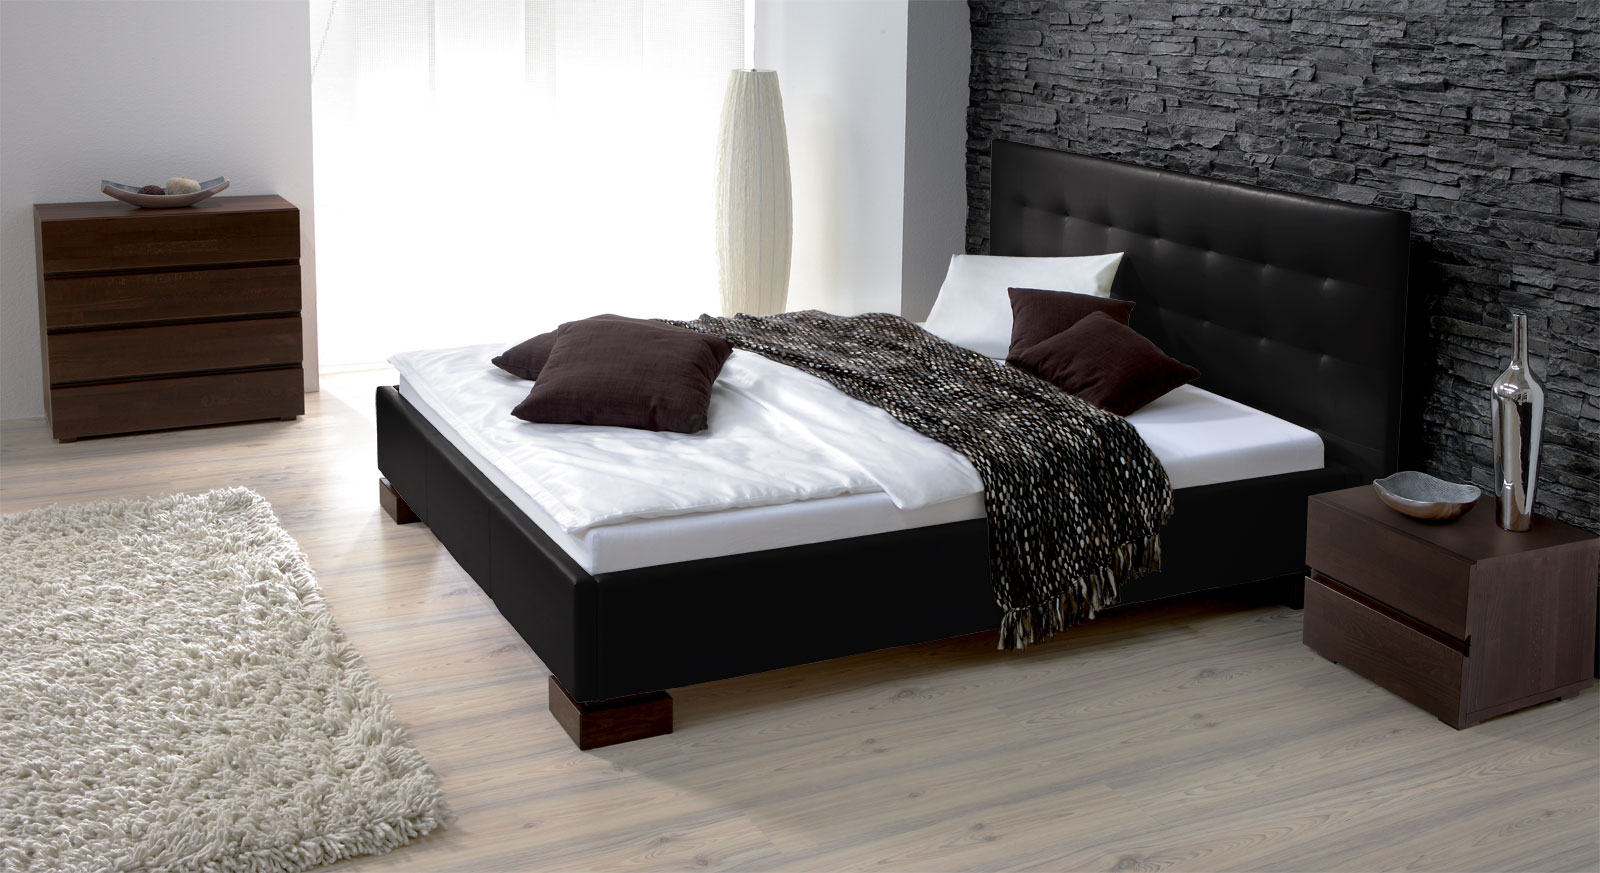 kunstleder bett in berl nge erh ltlich bett ruby. Black Bedroom Furniture Sets. Home Design Ideas